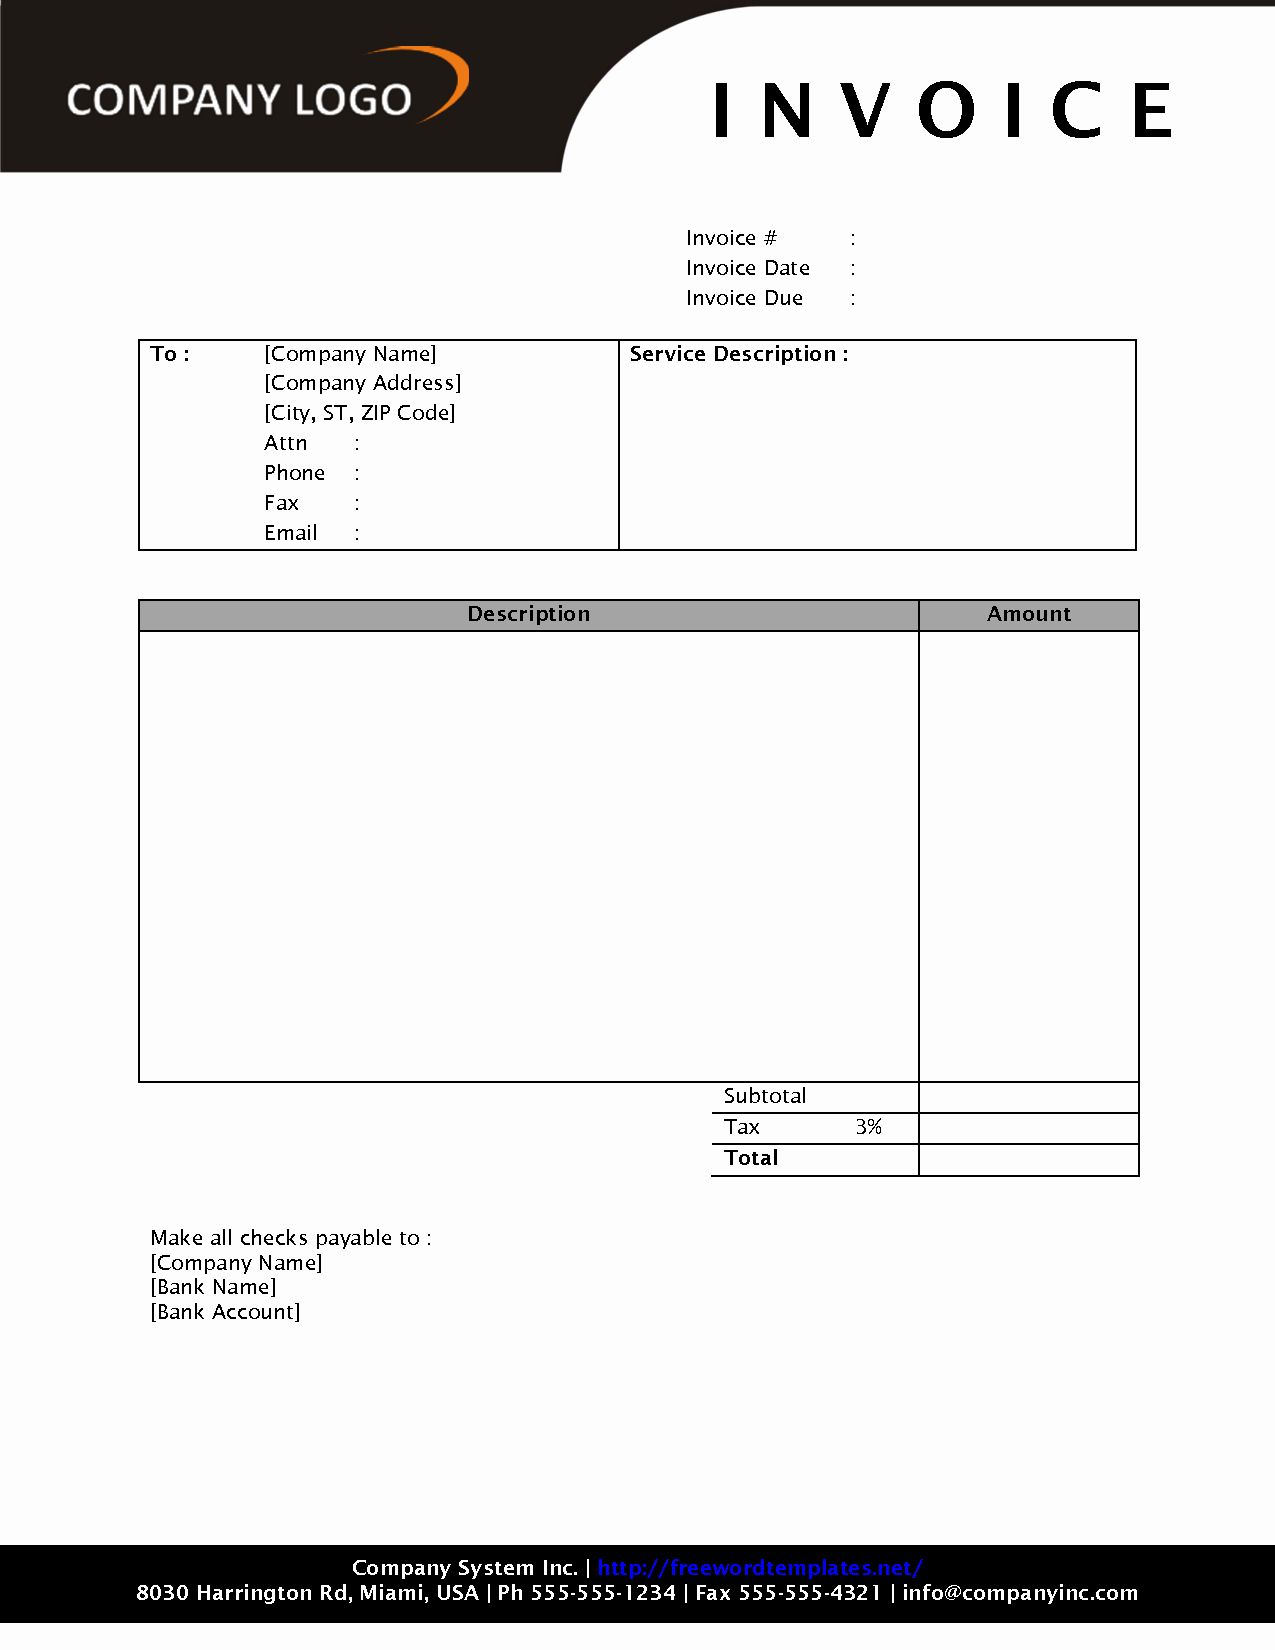 Free Invoice Receipt Template Awesome Free Download Invoice Template